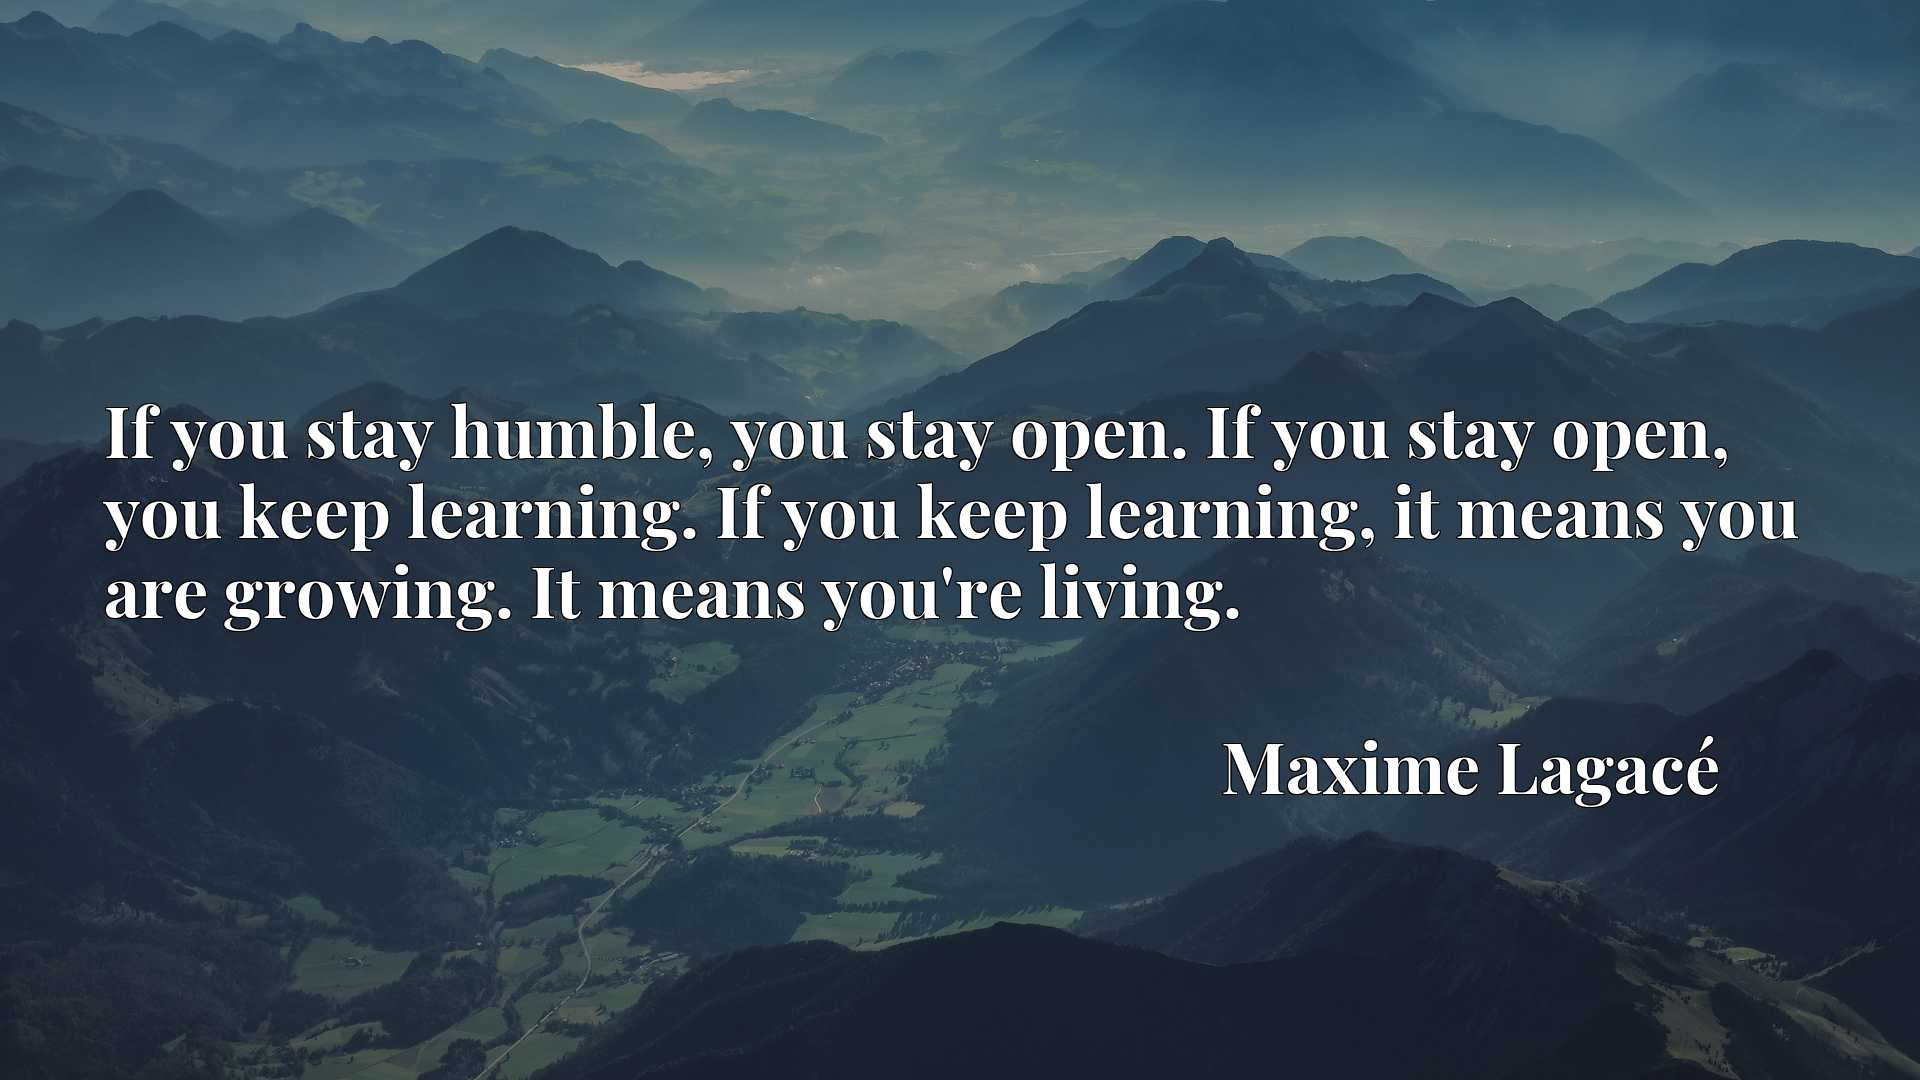 If you stay humble, you stay open. If you stay open, you keep learning. If you keep learning, it means you are growing. It means you're living.